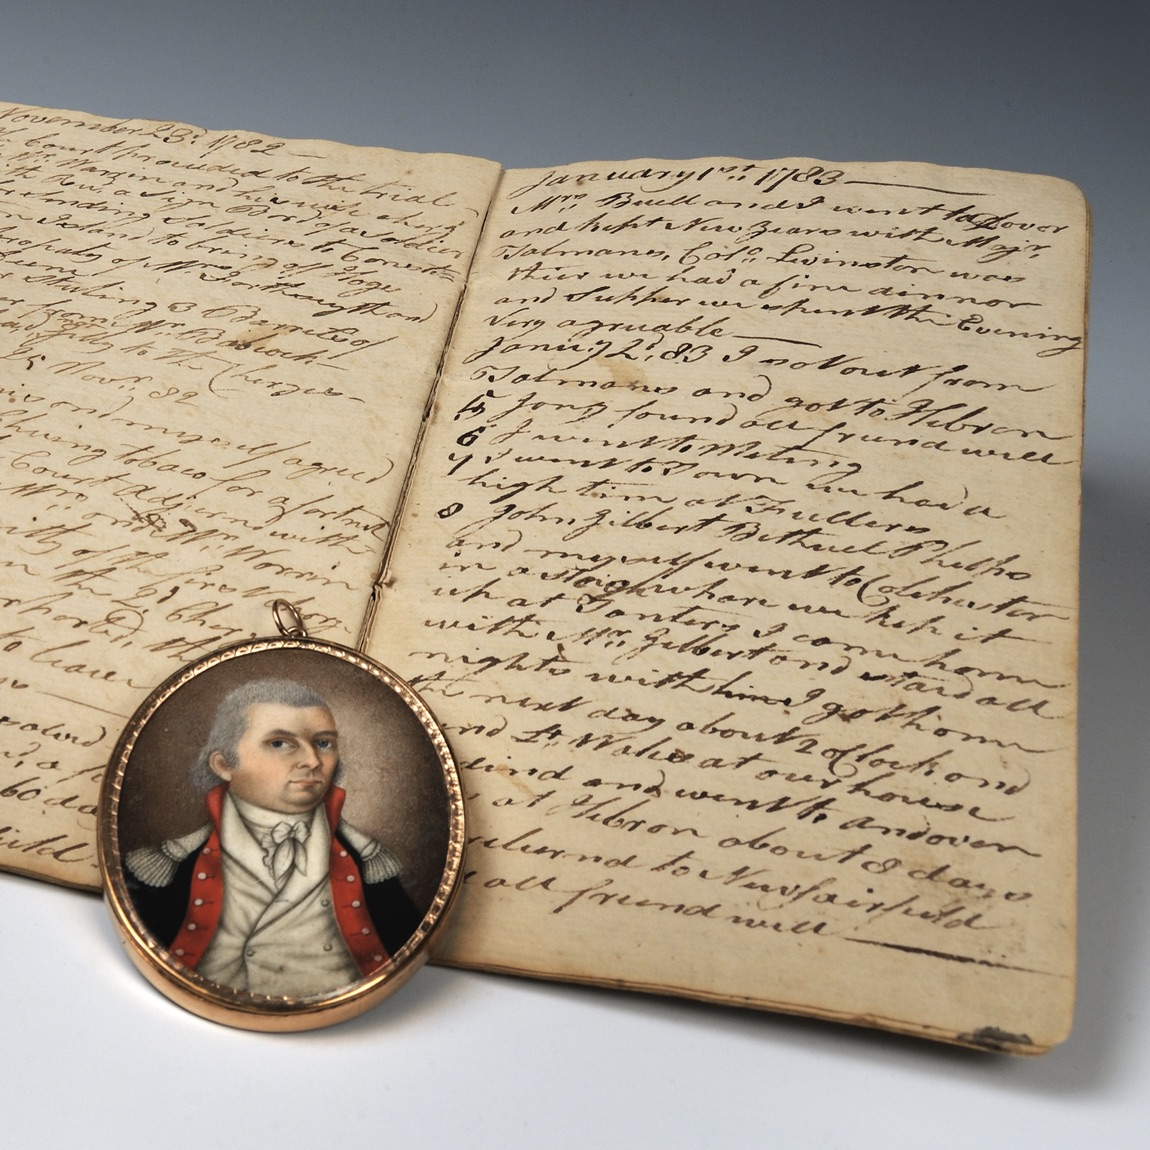 The diary of a Revolutionary War officer is among the primary source documents students are called on to interpret in the Revolution on Paper lessons.